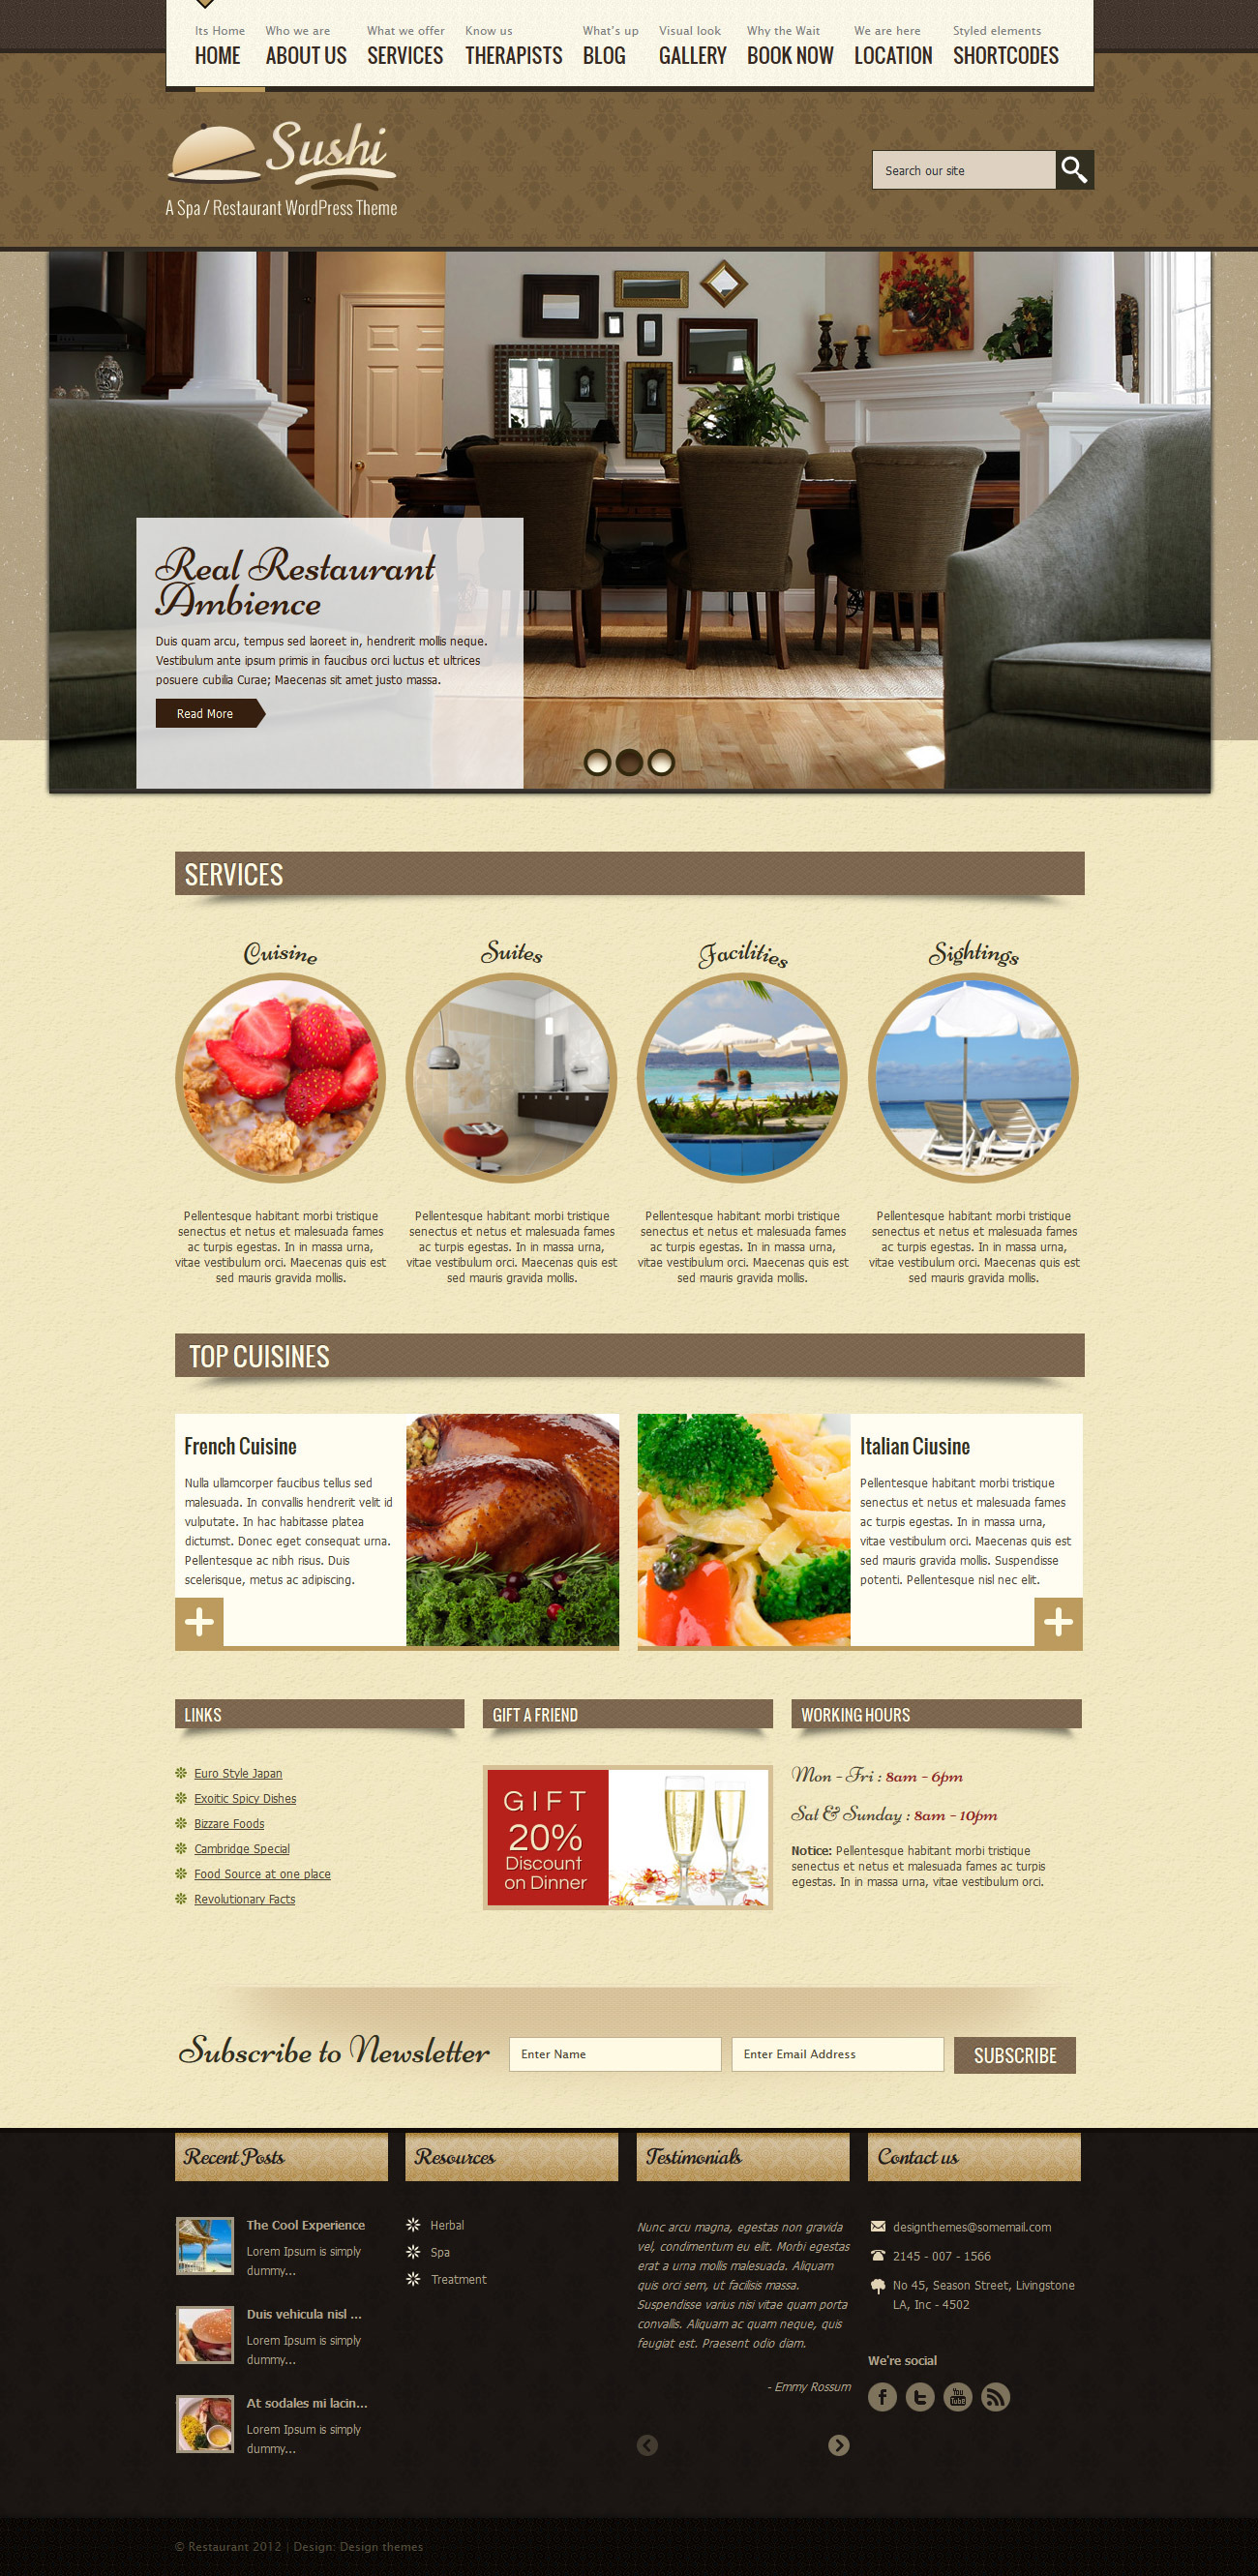 SPA Treats - Spa & Restaurant WooCommerce Theme - Travel|Ecommerce>WooCommerce